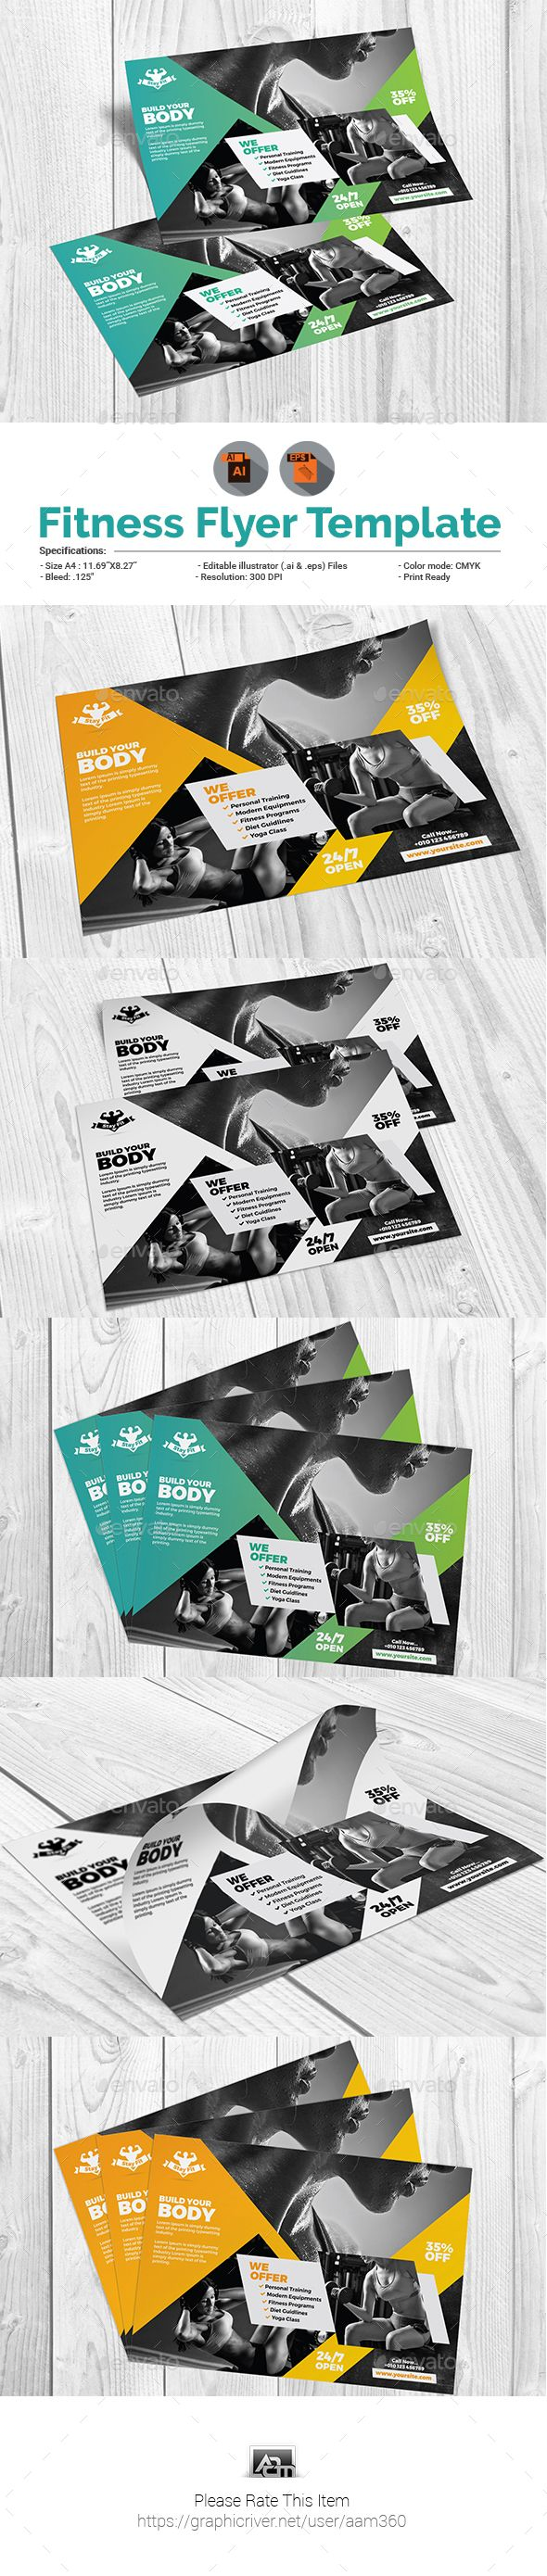 Fitness Flyer. Professional sports flyer template. #flyer #design #printDesign #sport #print #ad #ad...